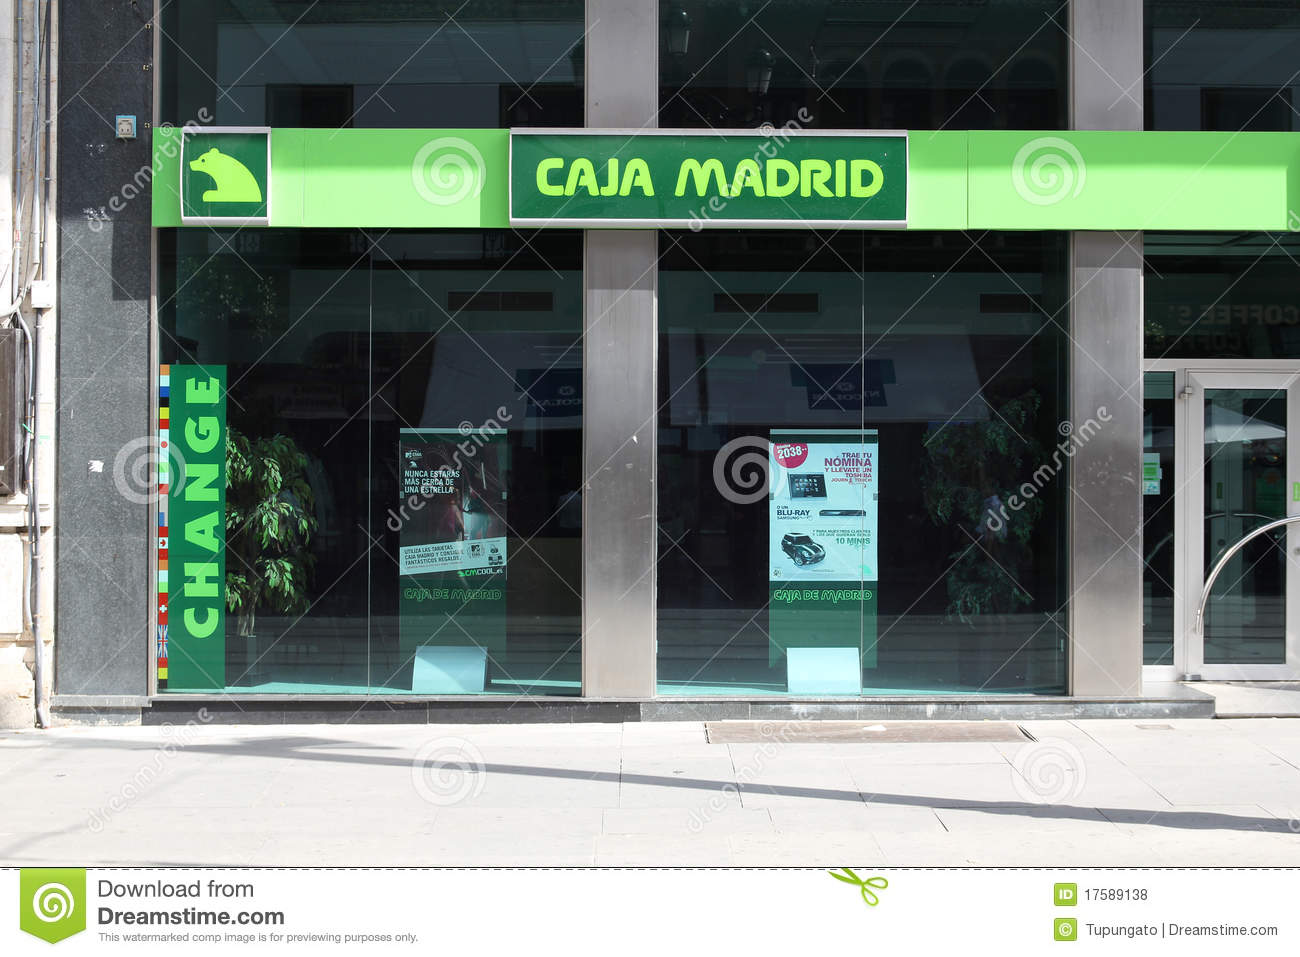 caja espana managing the branches to sell Wells fargo & co is the nation's leader in selling add-on services to its customers the giant san francisco bank brags in earnings reports of its prowess in cross-selling financial products.